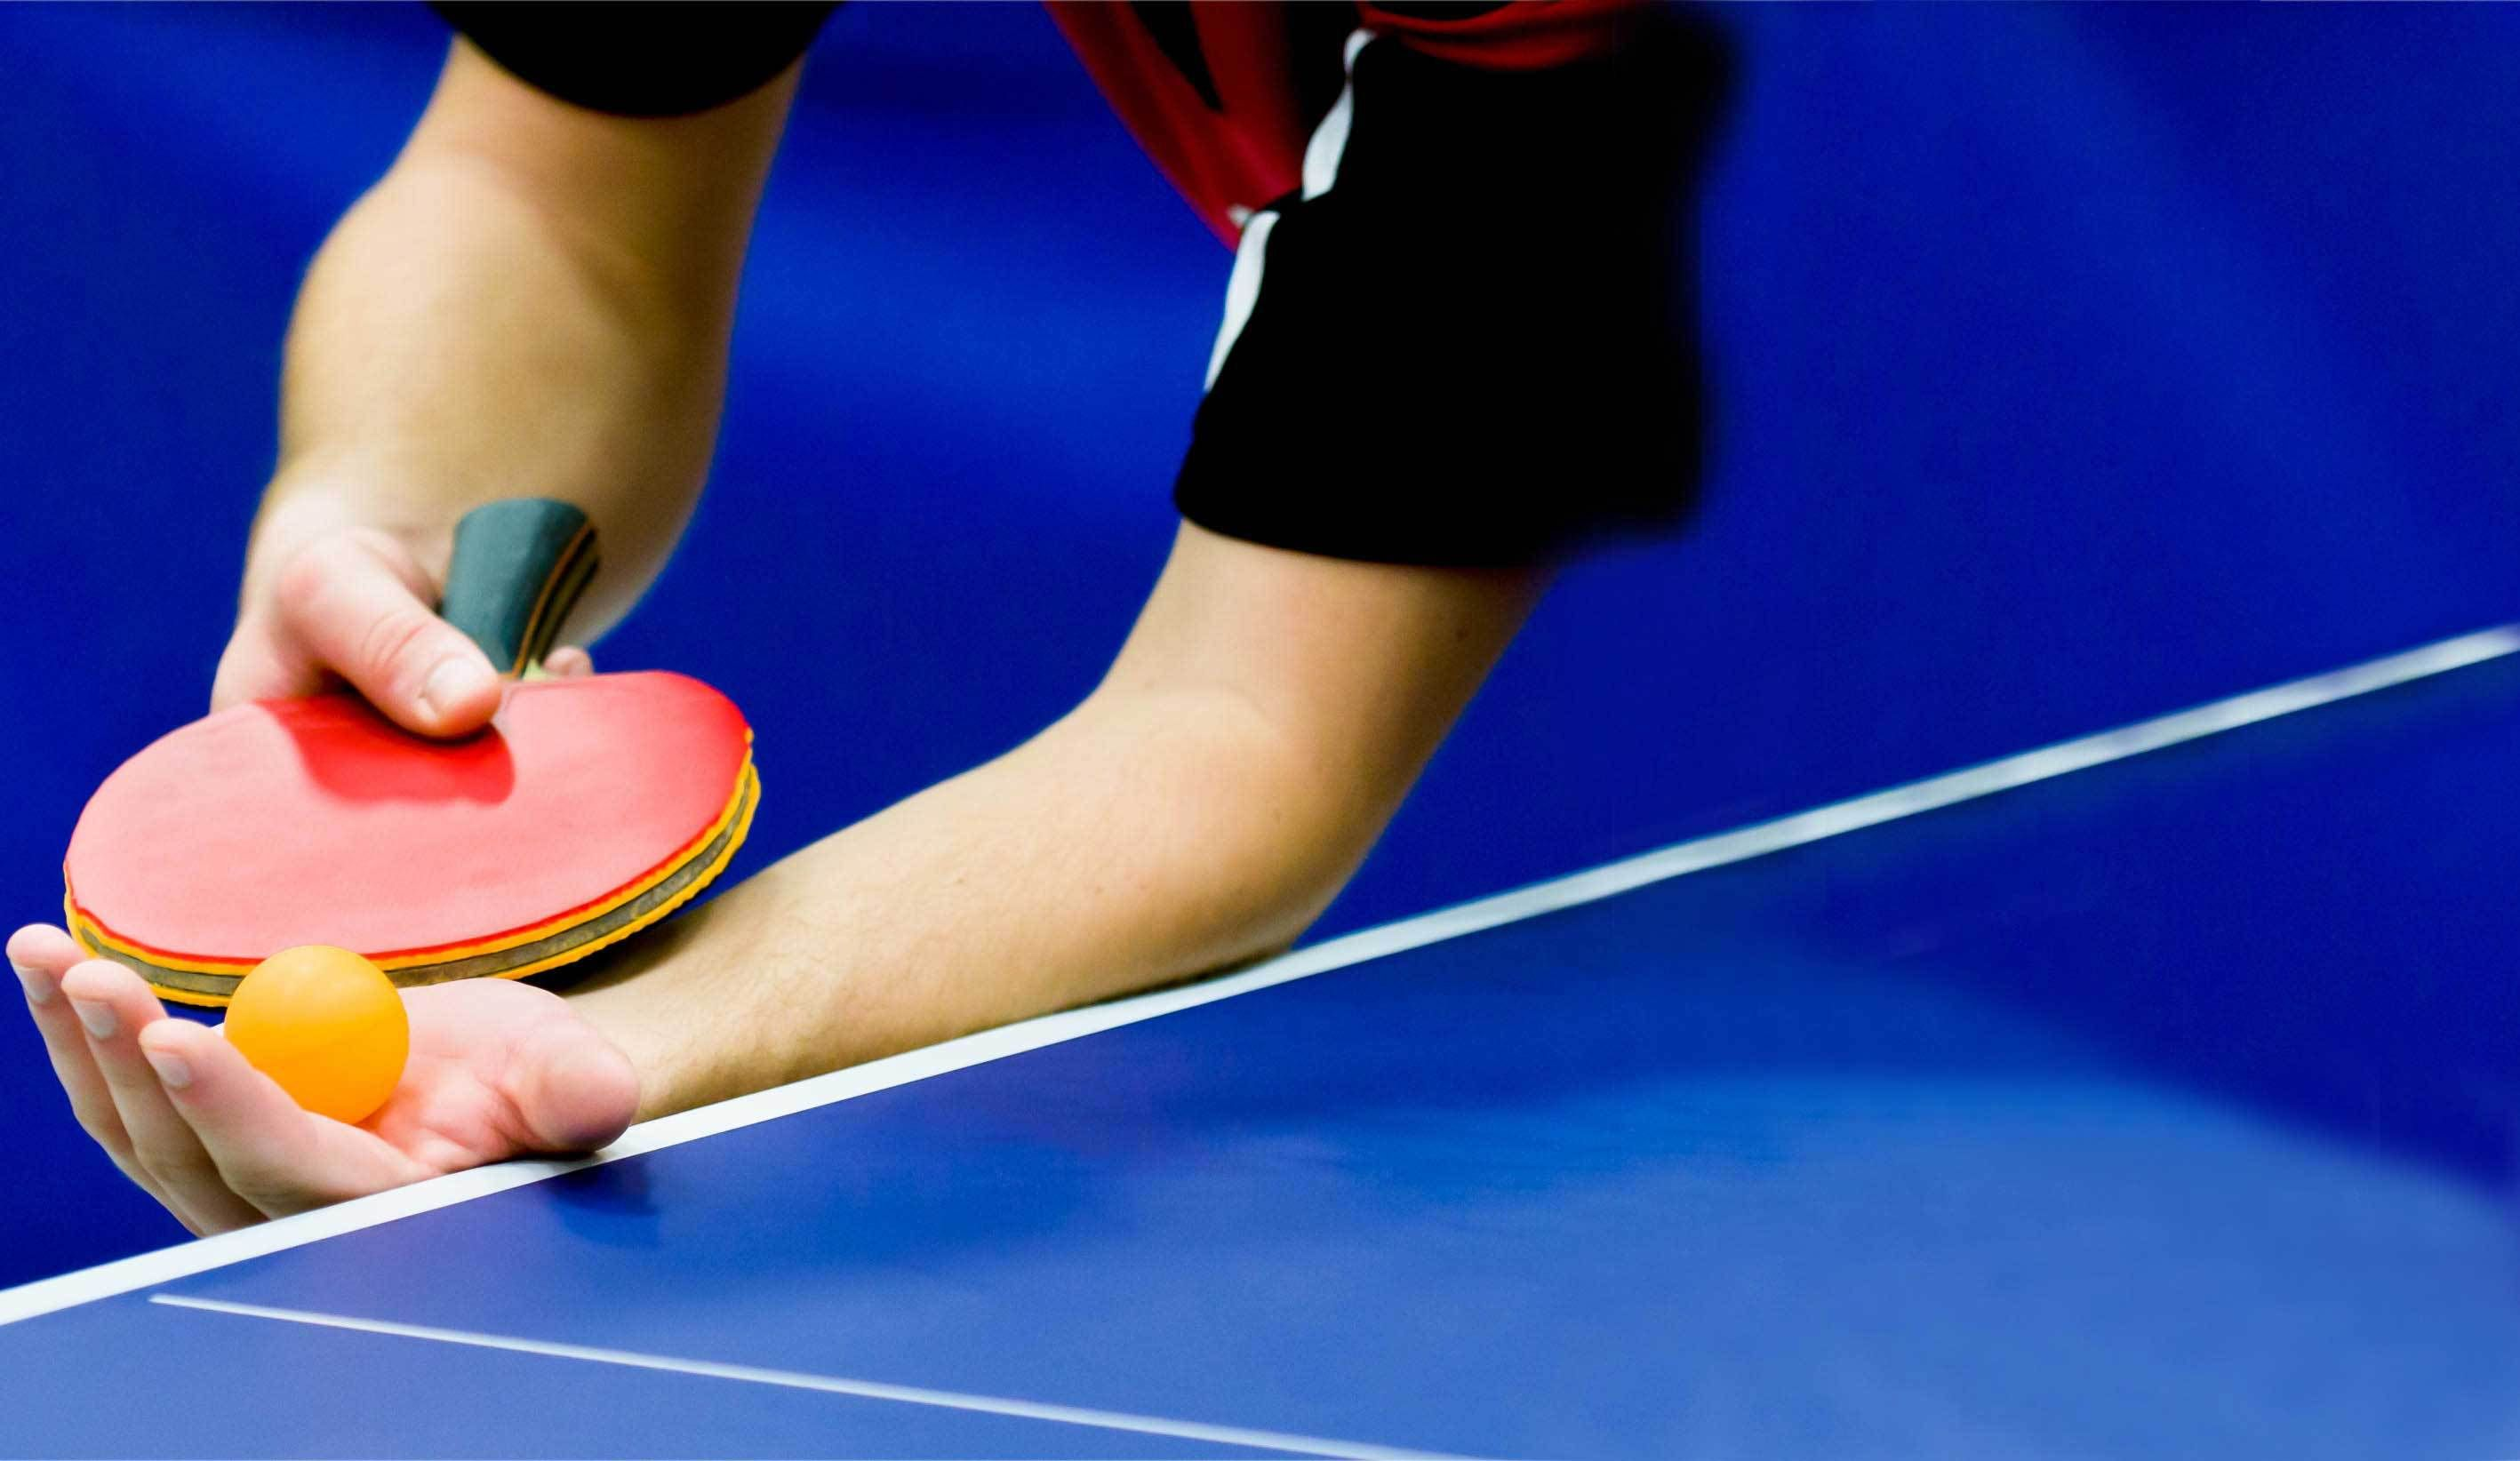 Let's Ping-Pong!